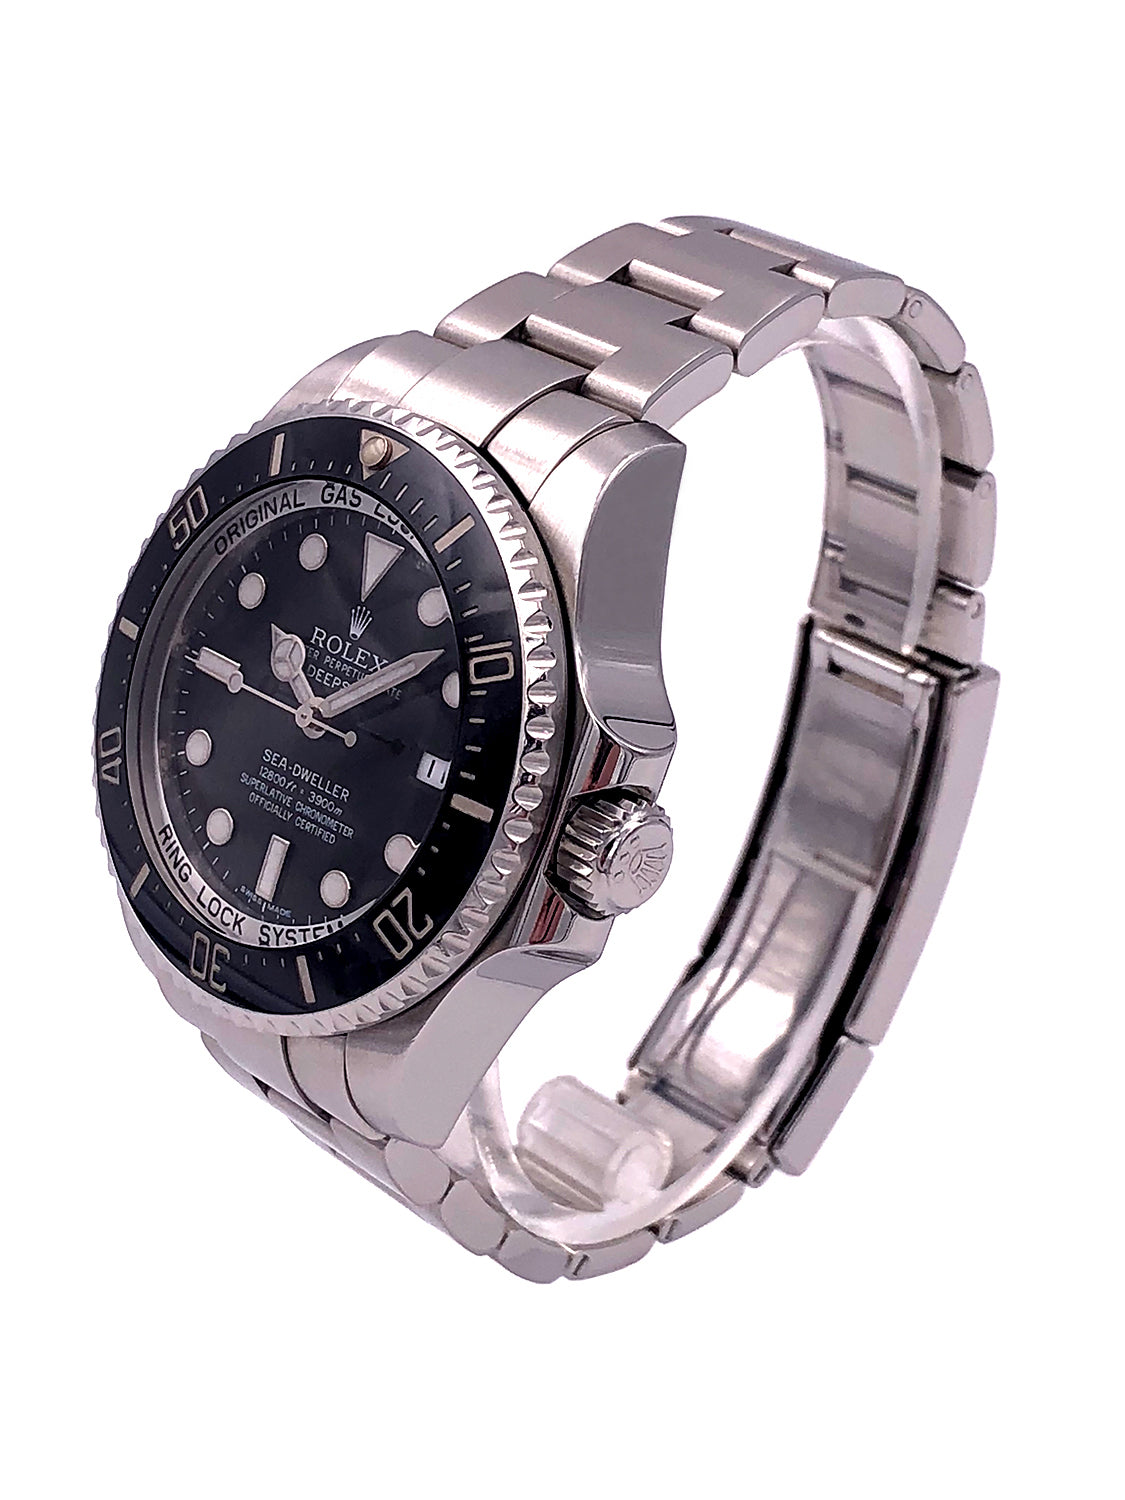 Rolex SeaDweller Deep Sea Stainless Steel Black Dial – 116660 Factory Warranty